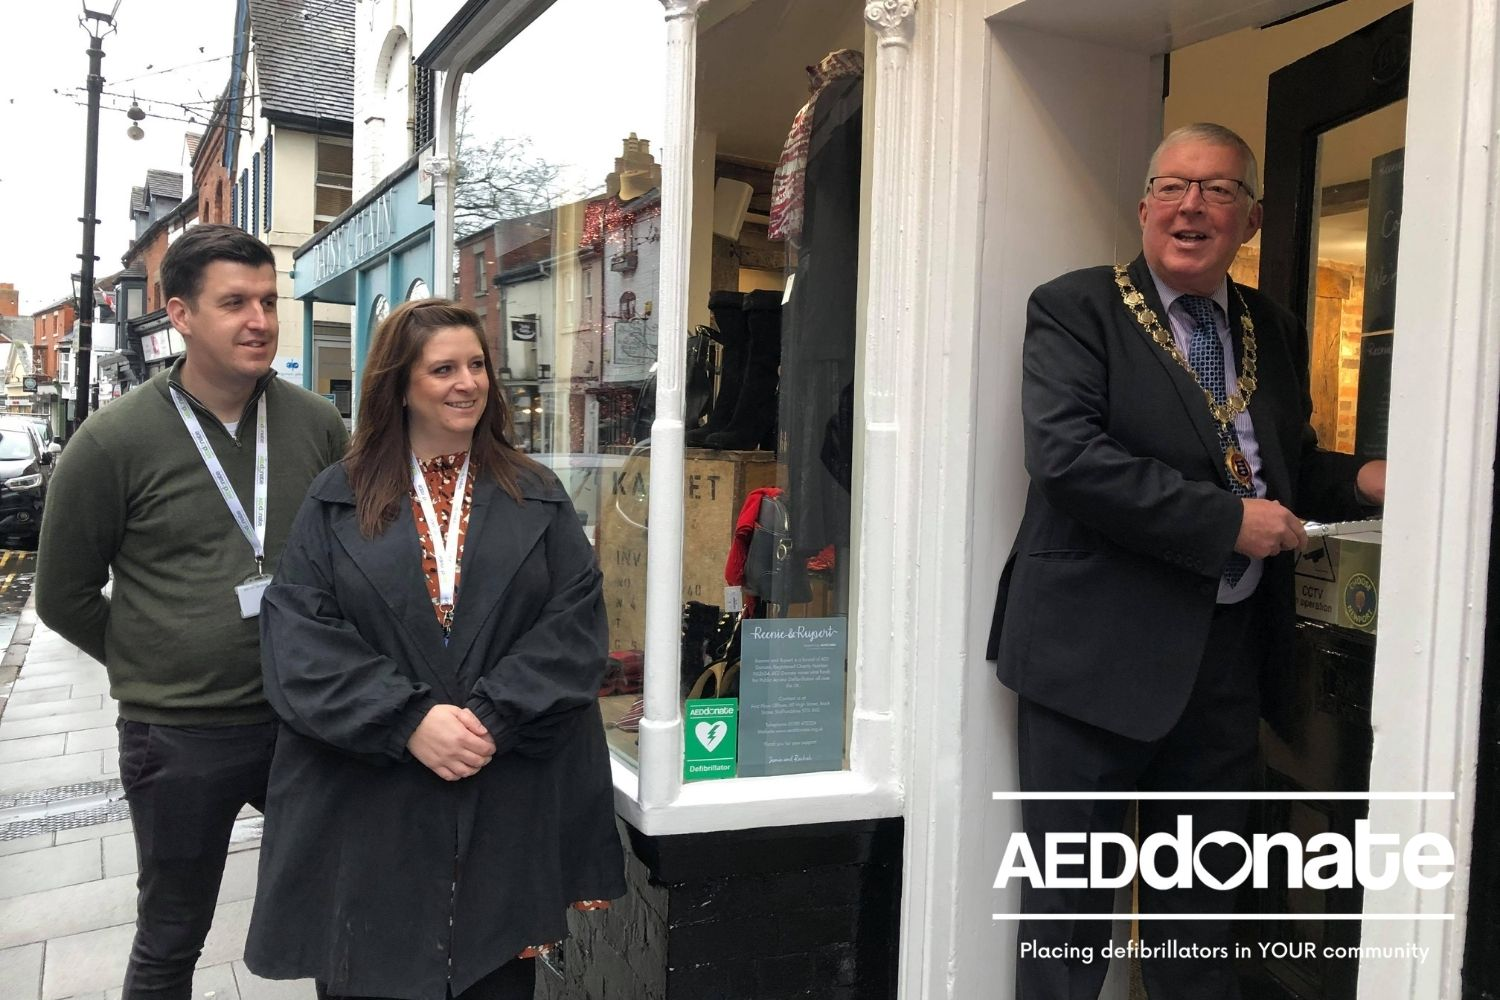 AEDdonate opens 3rd Charity Shop!